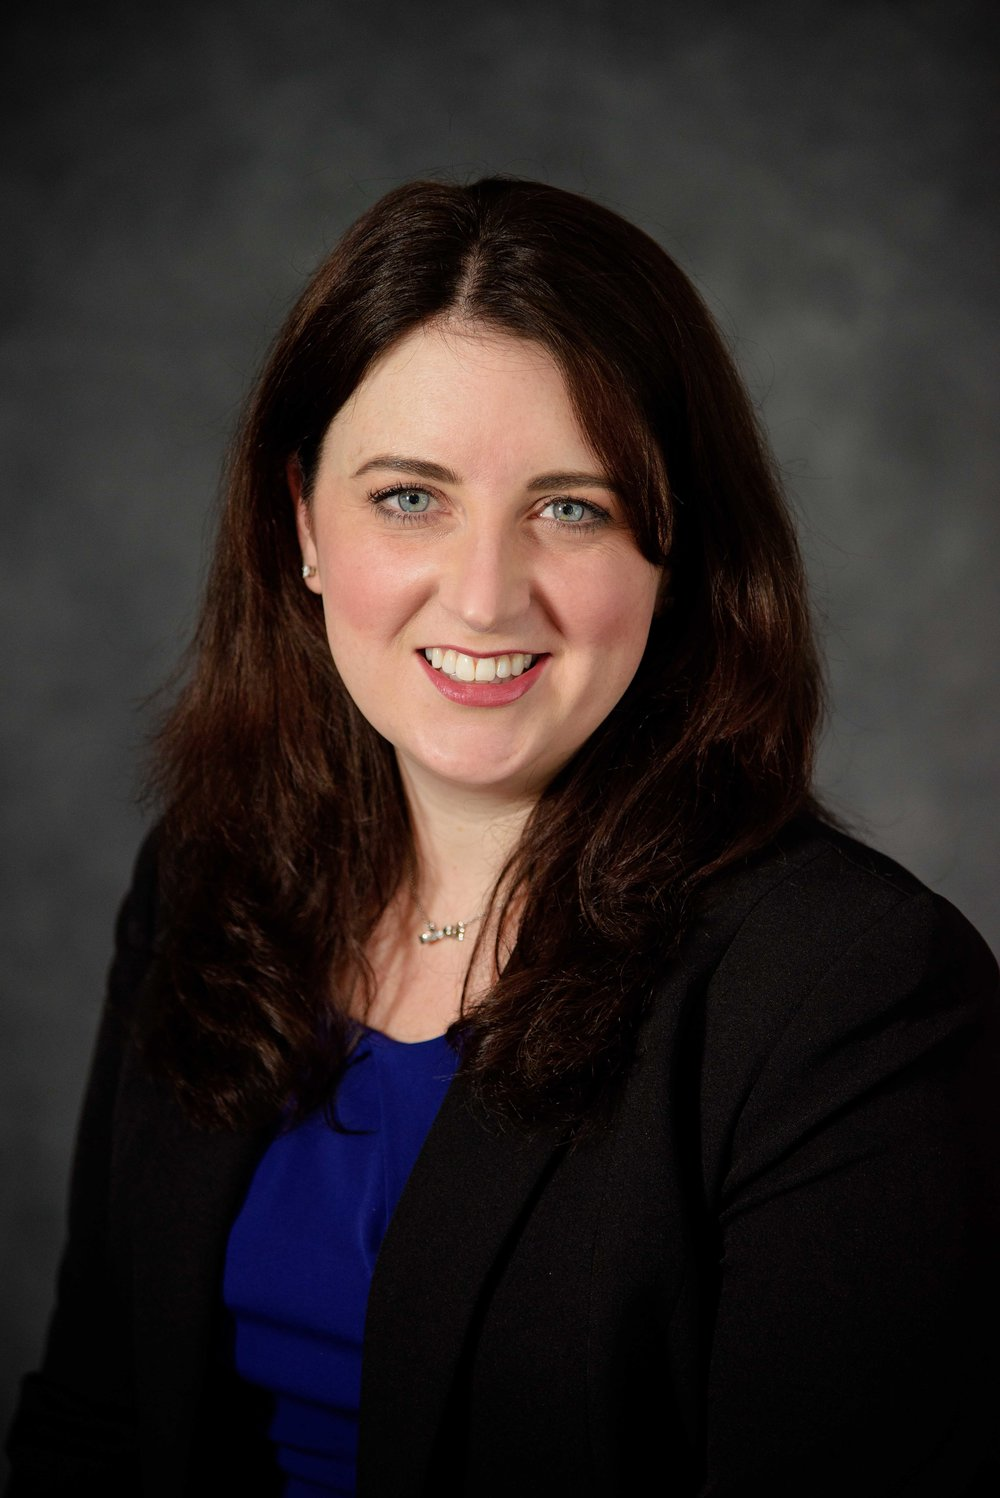 Ashley Bauman, Owner of Bauman Consulting Group in Loveland, Ohio